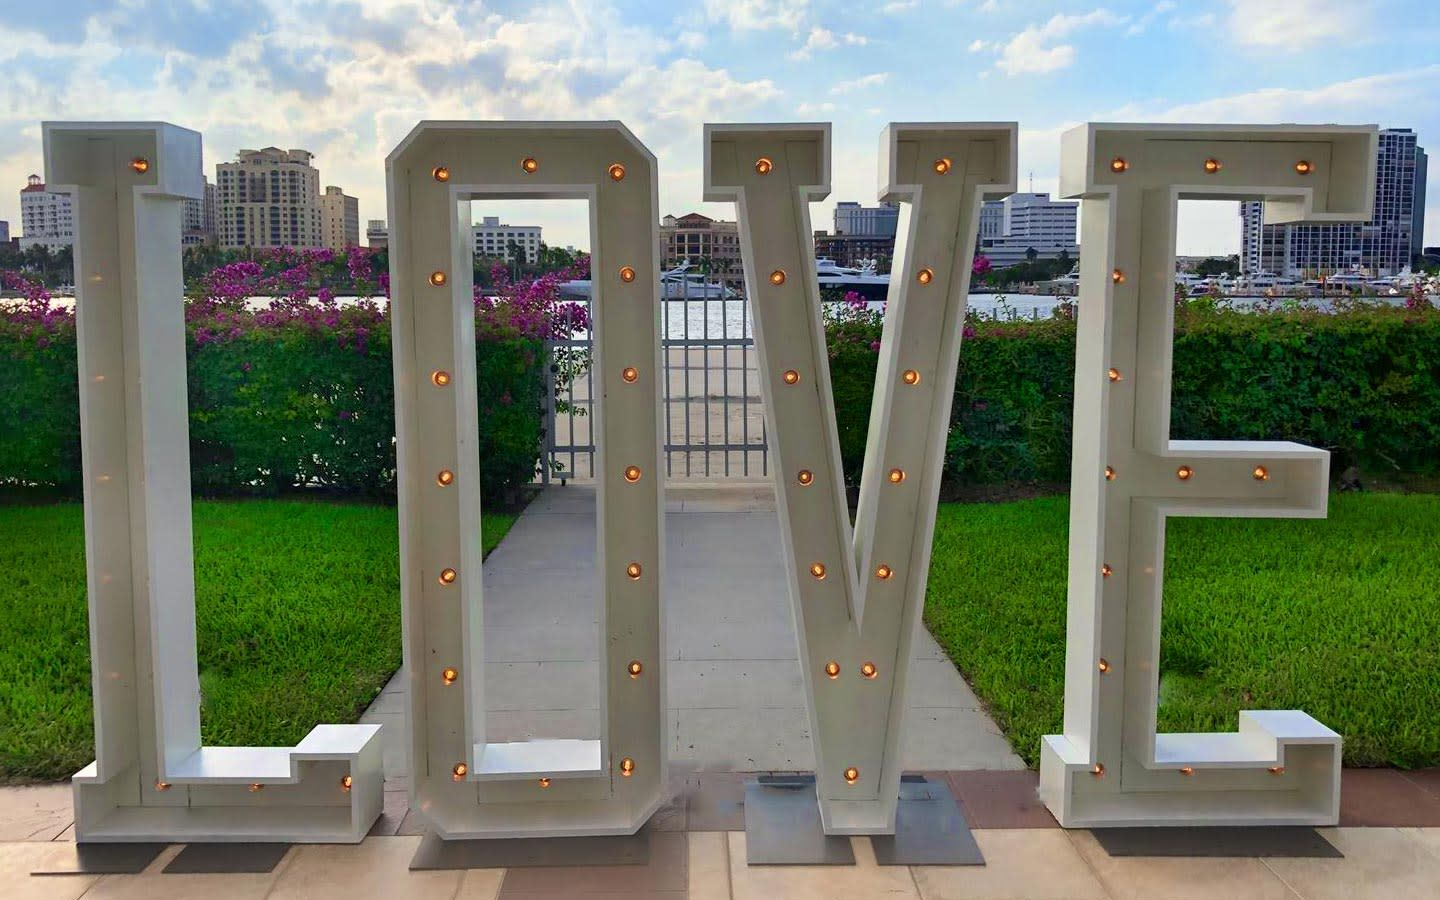 Miami Photo Booth Light-up Love Sign